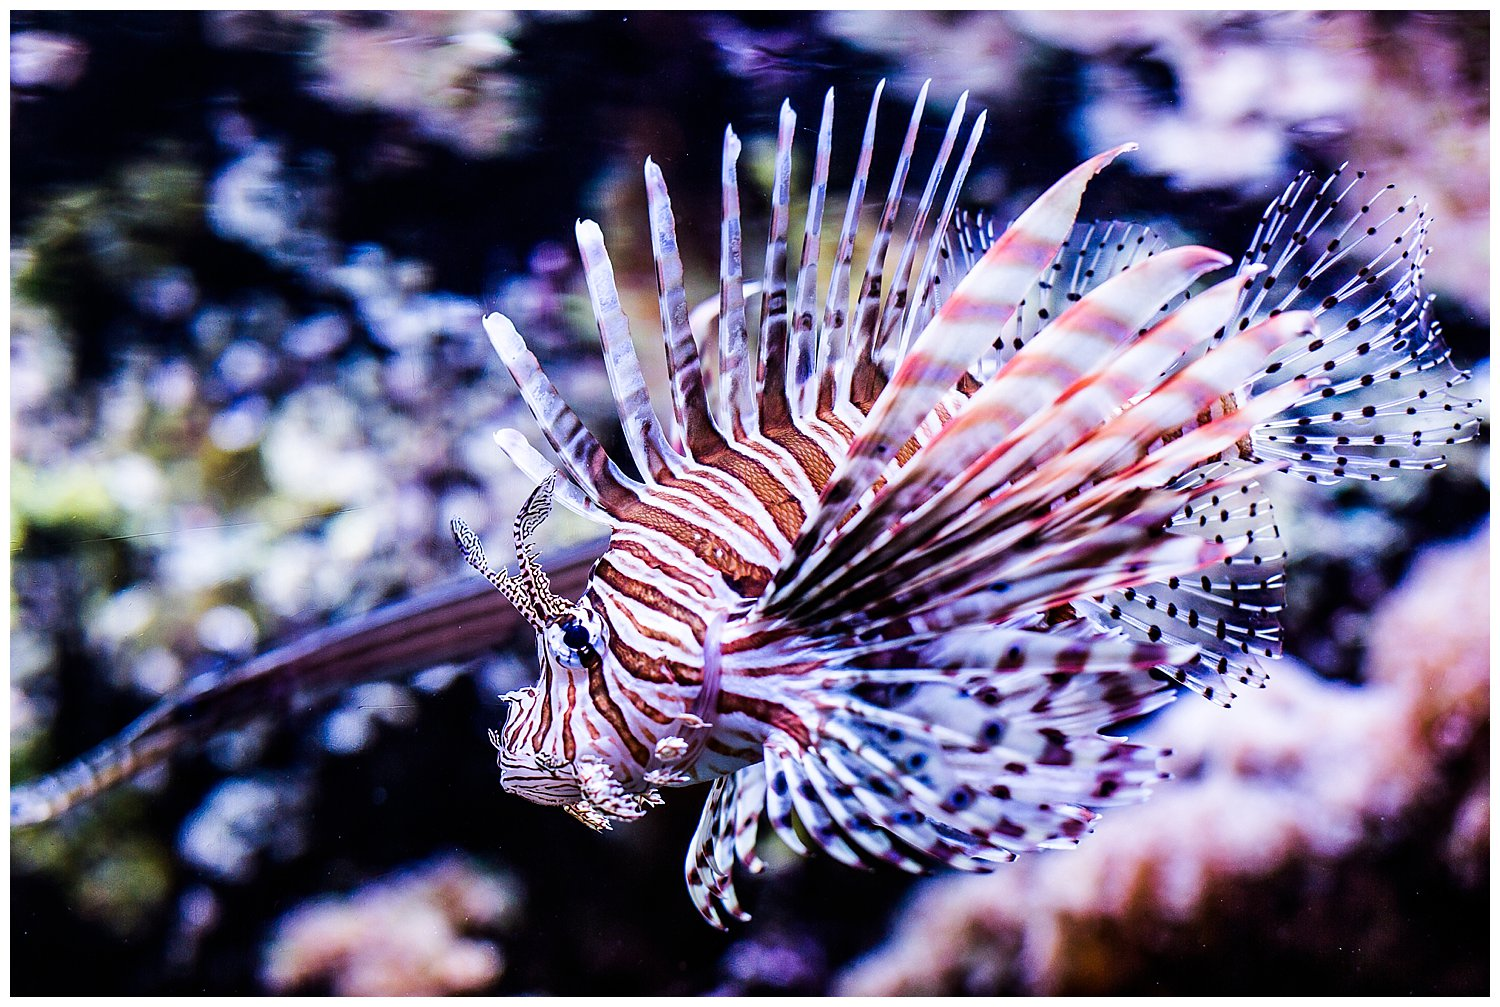 fish in aquarium Seattle Washington